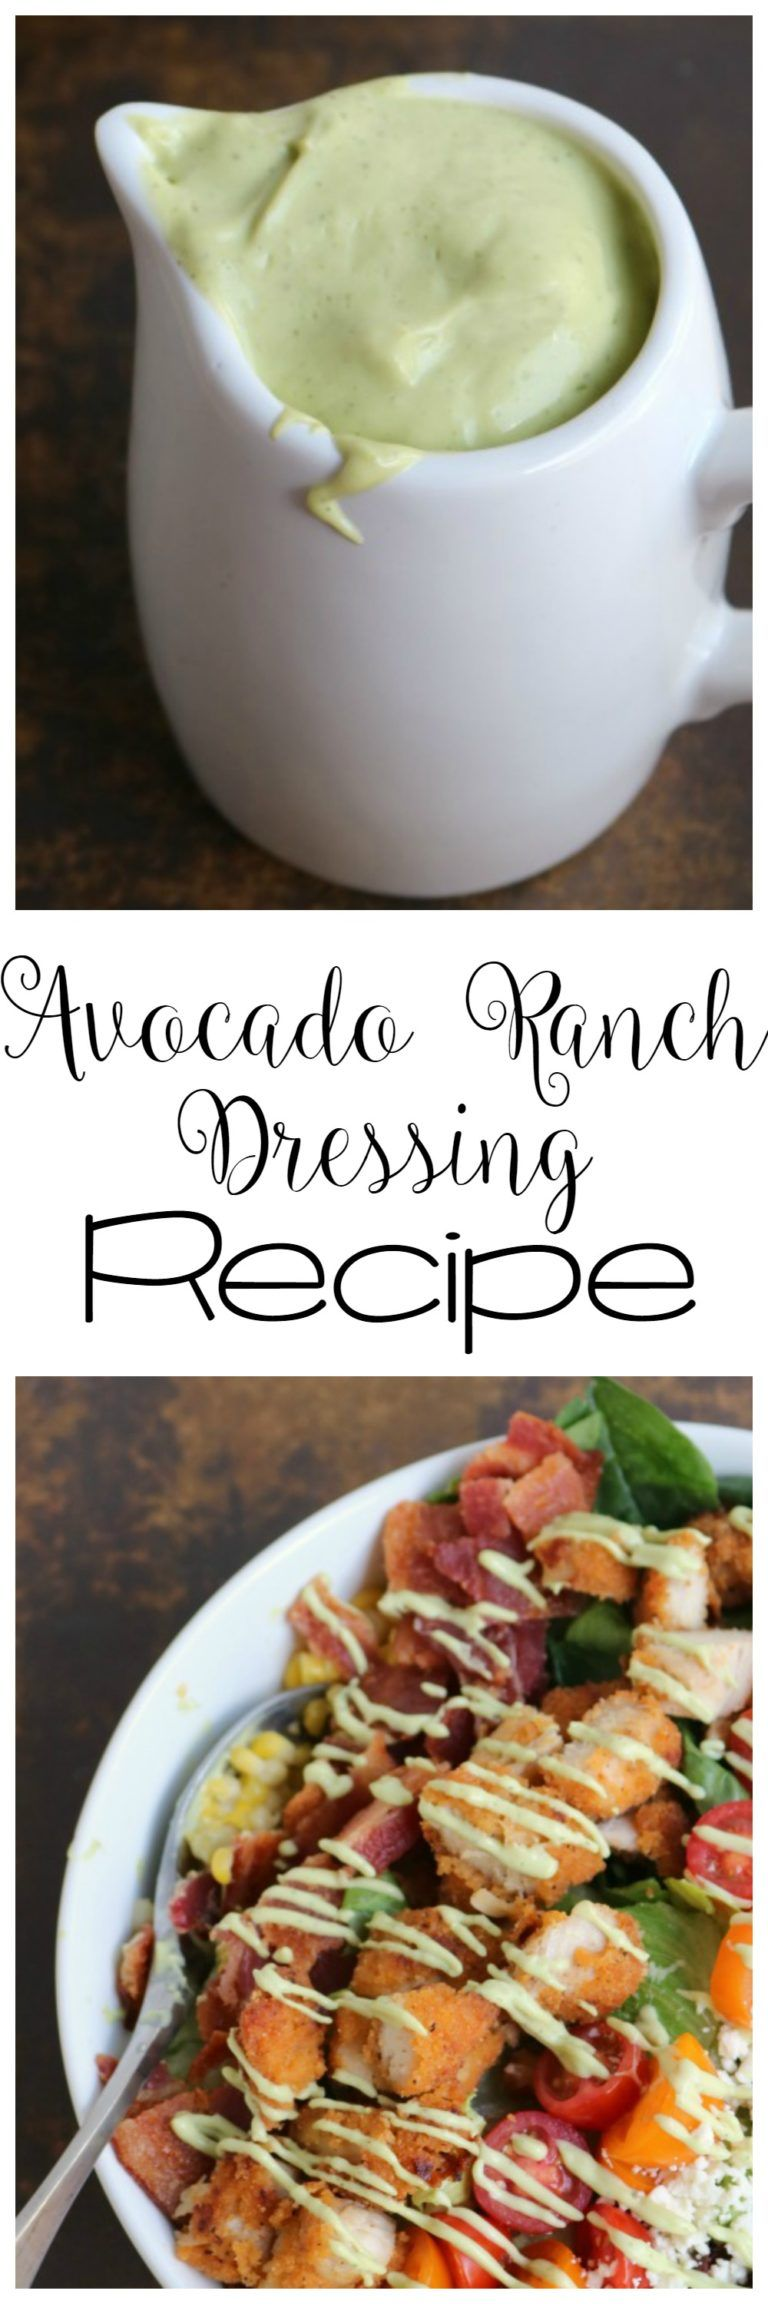 Avocado Ranch Dressing #avocadoranch